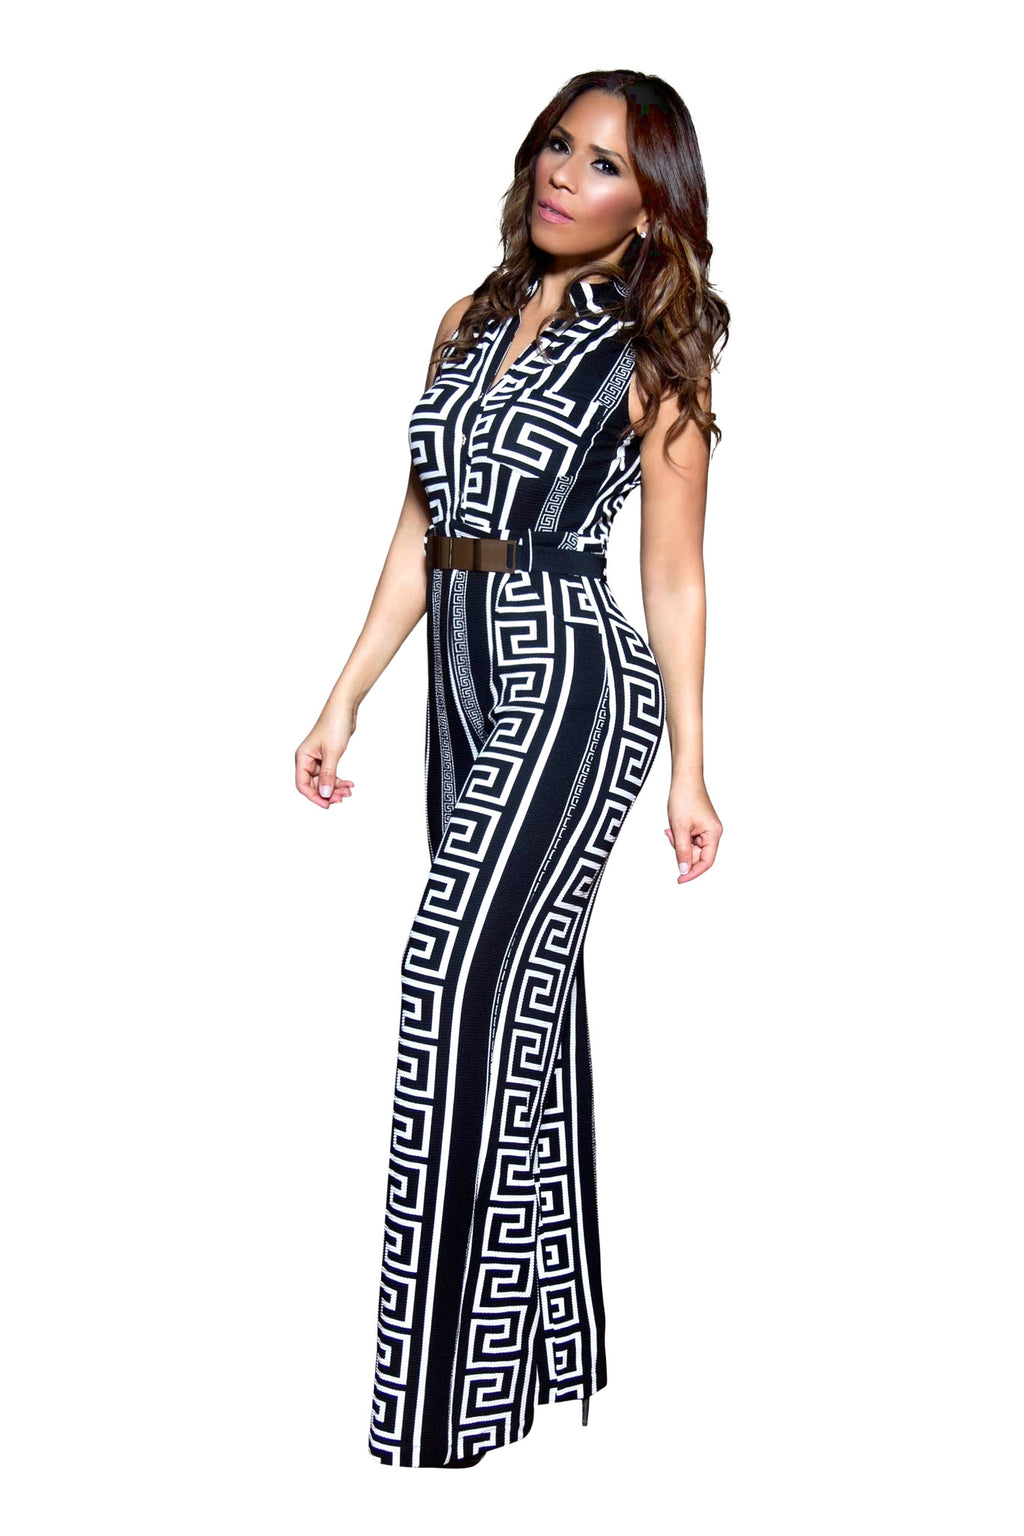 5a78d7e2868 Classy Geometric Print Black and White Belted Cocktail Jumpsuit- Black - MY  SEXY STYLES